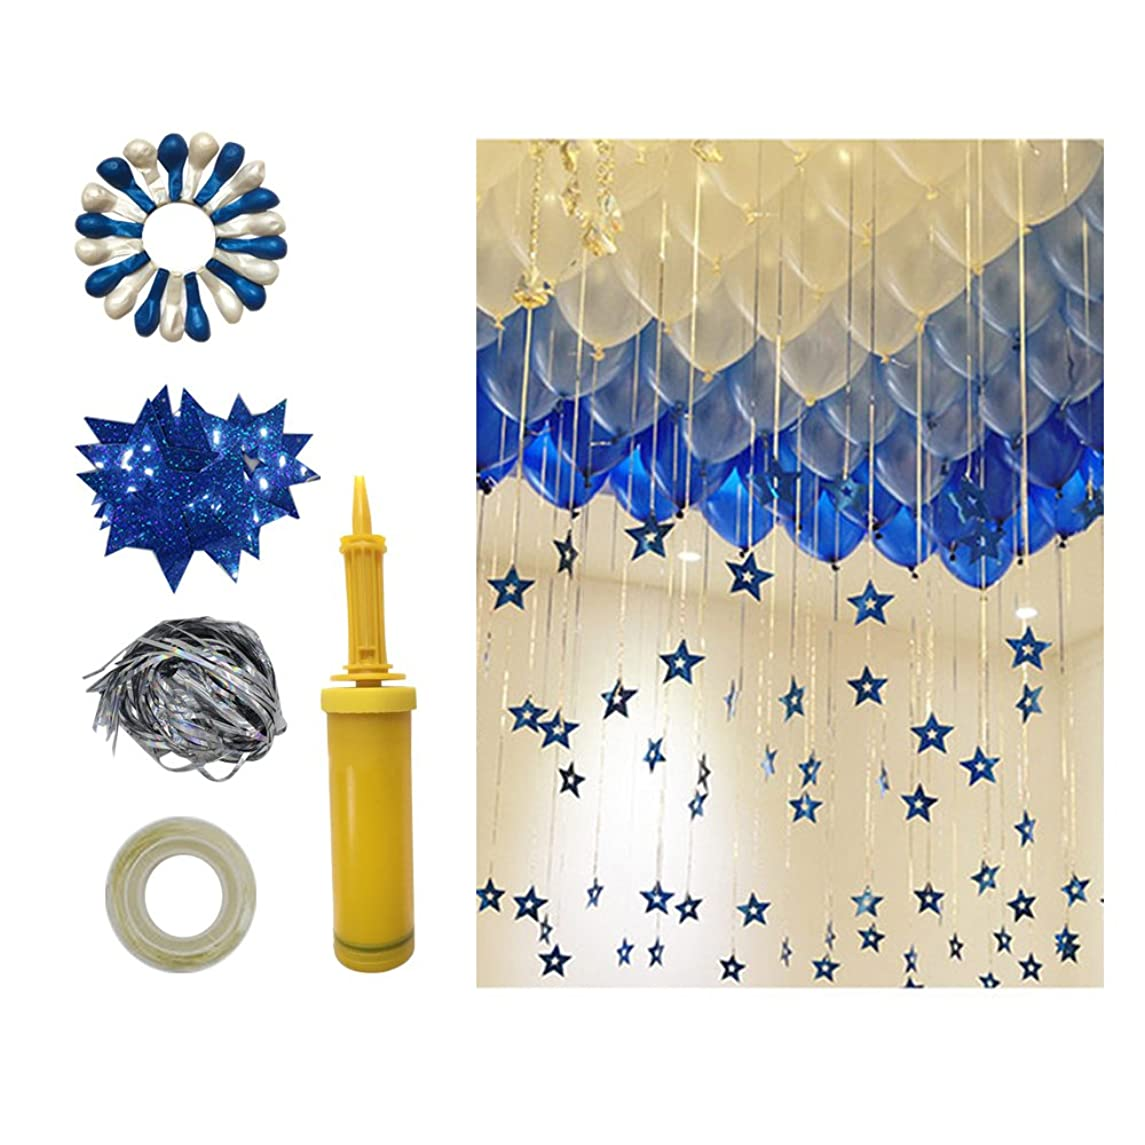 Wytogether Round Latex Balloons (50 Blue,50 White),12inches Premium Quality Thick Balloons, Radium Stars,Hand Held Air Pump.Balloon Tassel.The Balloon Dispensing. Radium Stars Random Color.